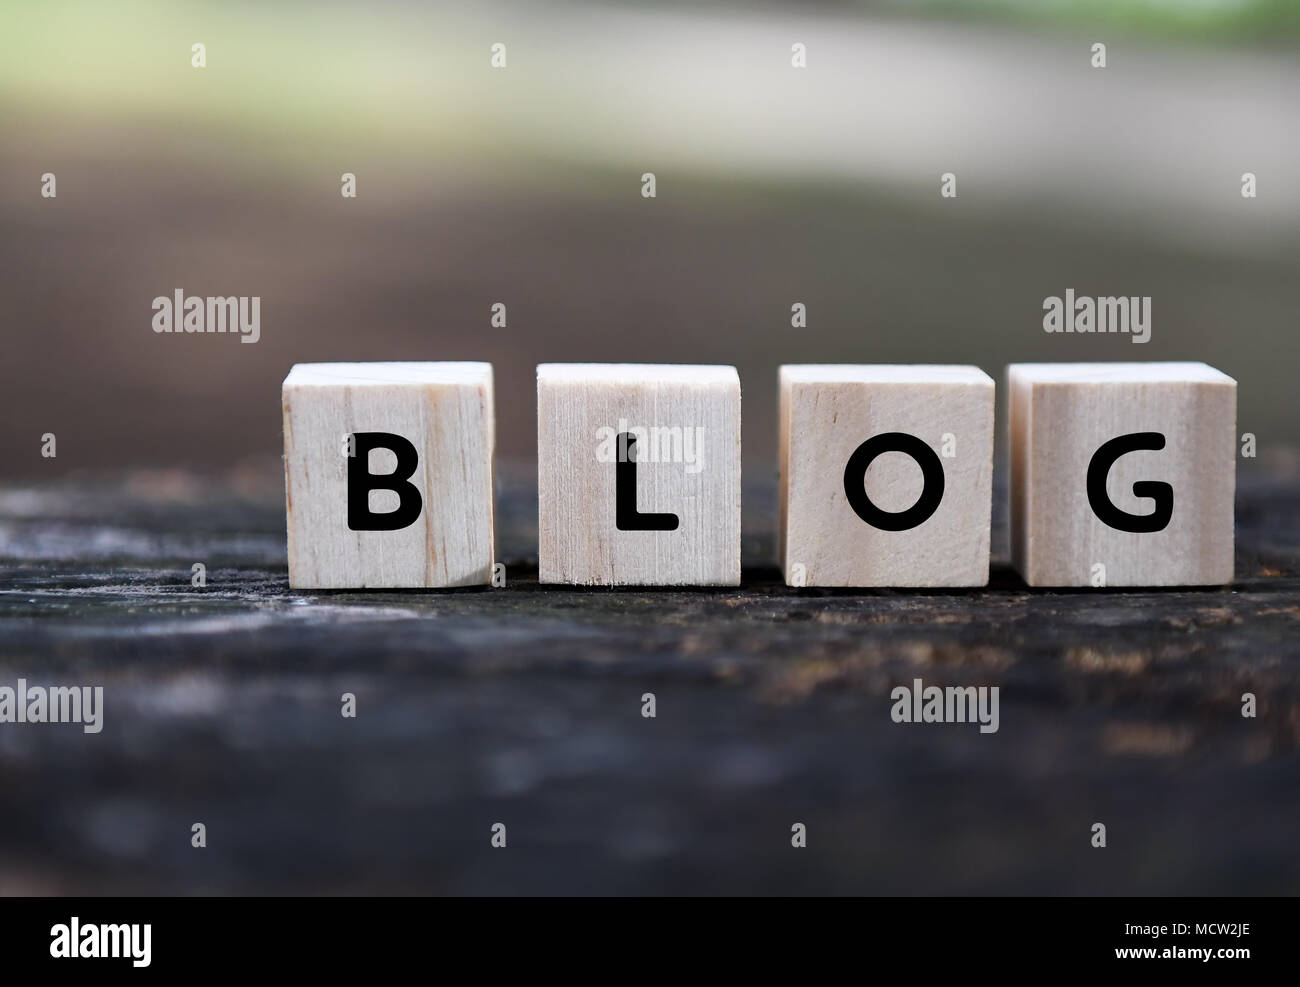 Blog word on wood blocks with blurry background. - Stock Image